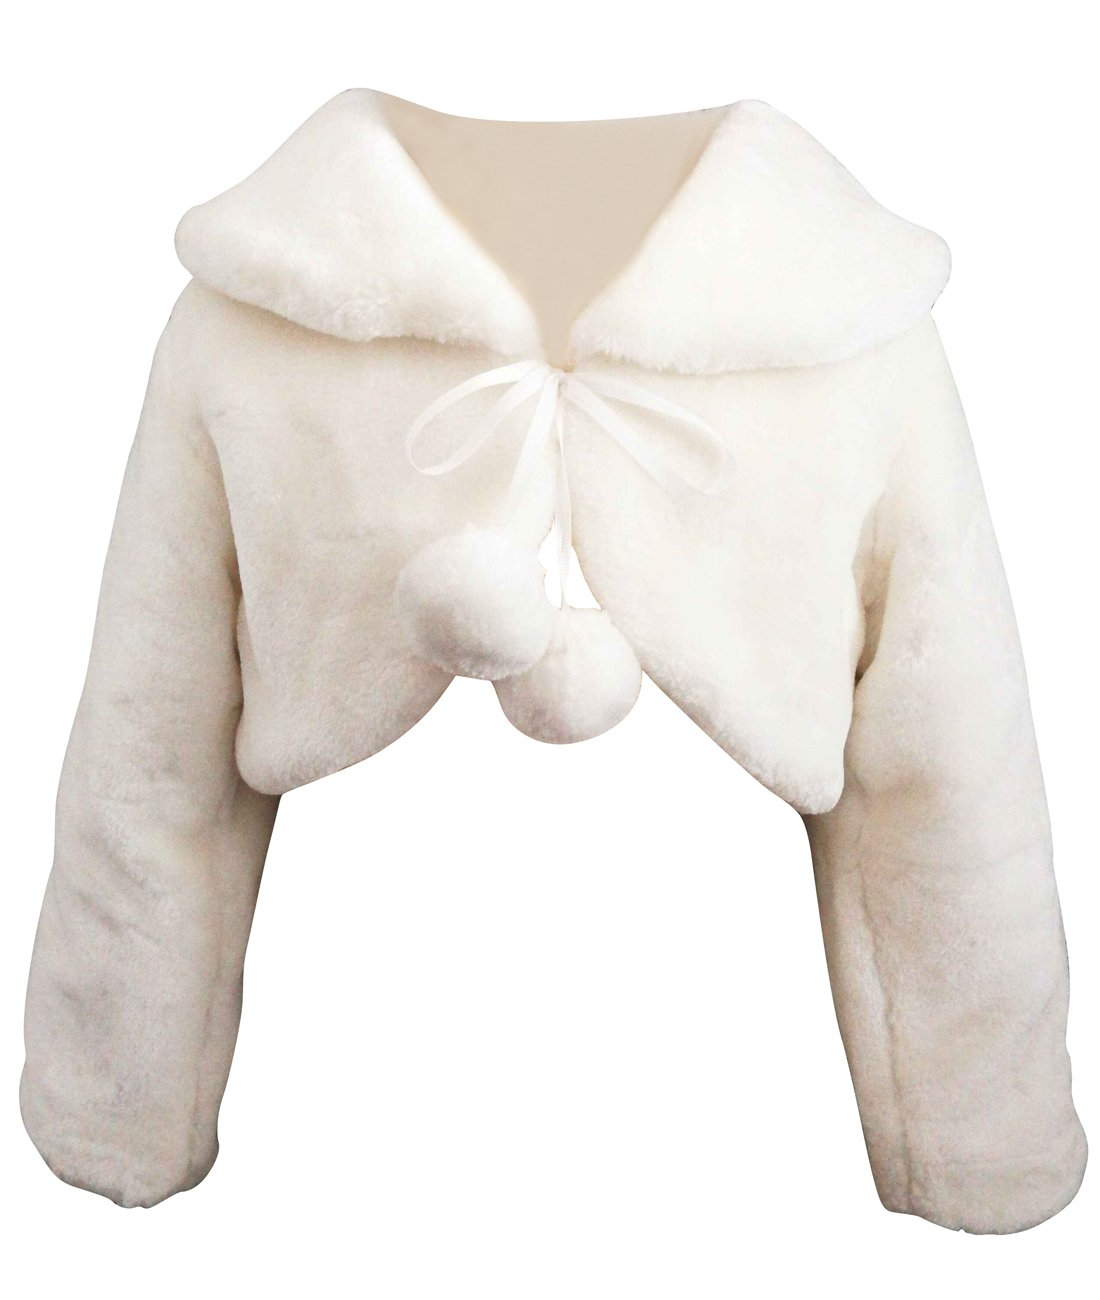 Funtrees Ivory Flower Girl Cape Wedding Party Wrap Bolero Jacket